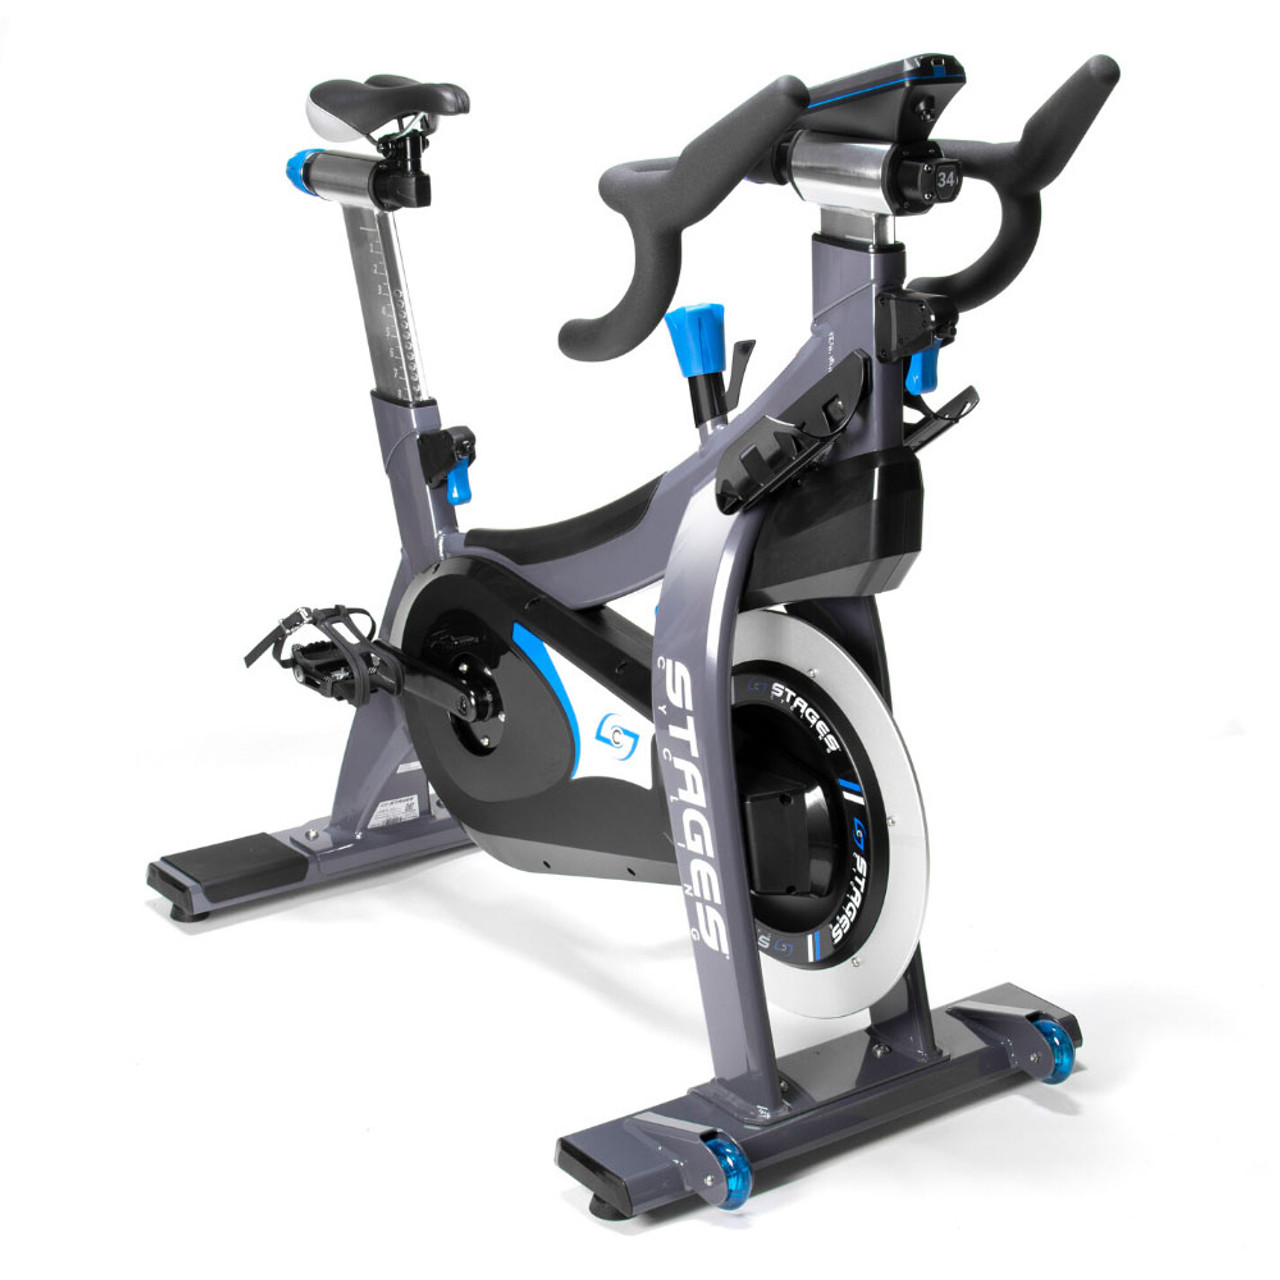 Stages SC3 Indoor Cycle w/Power Meter